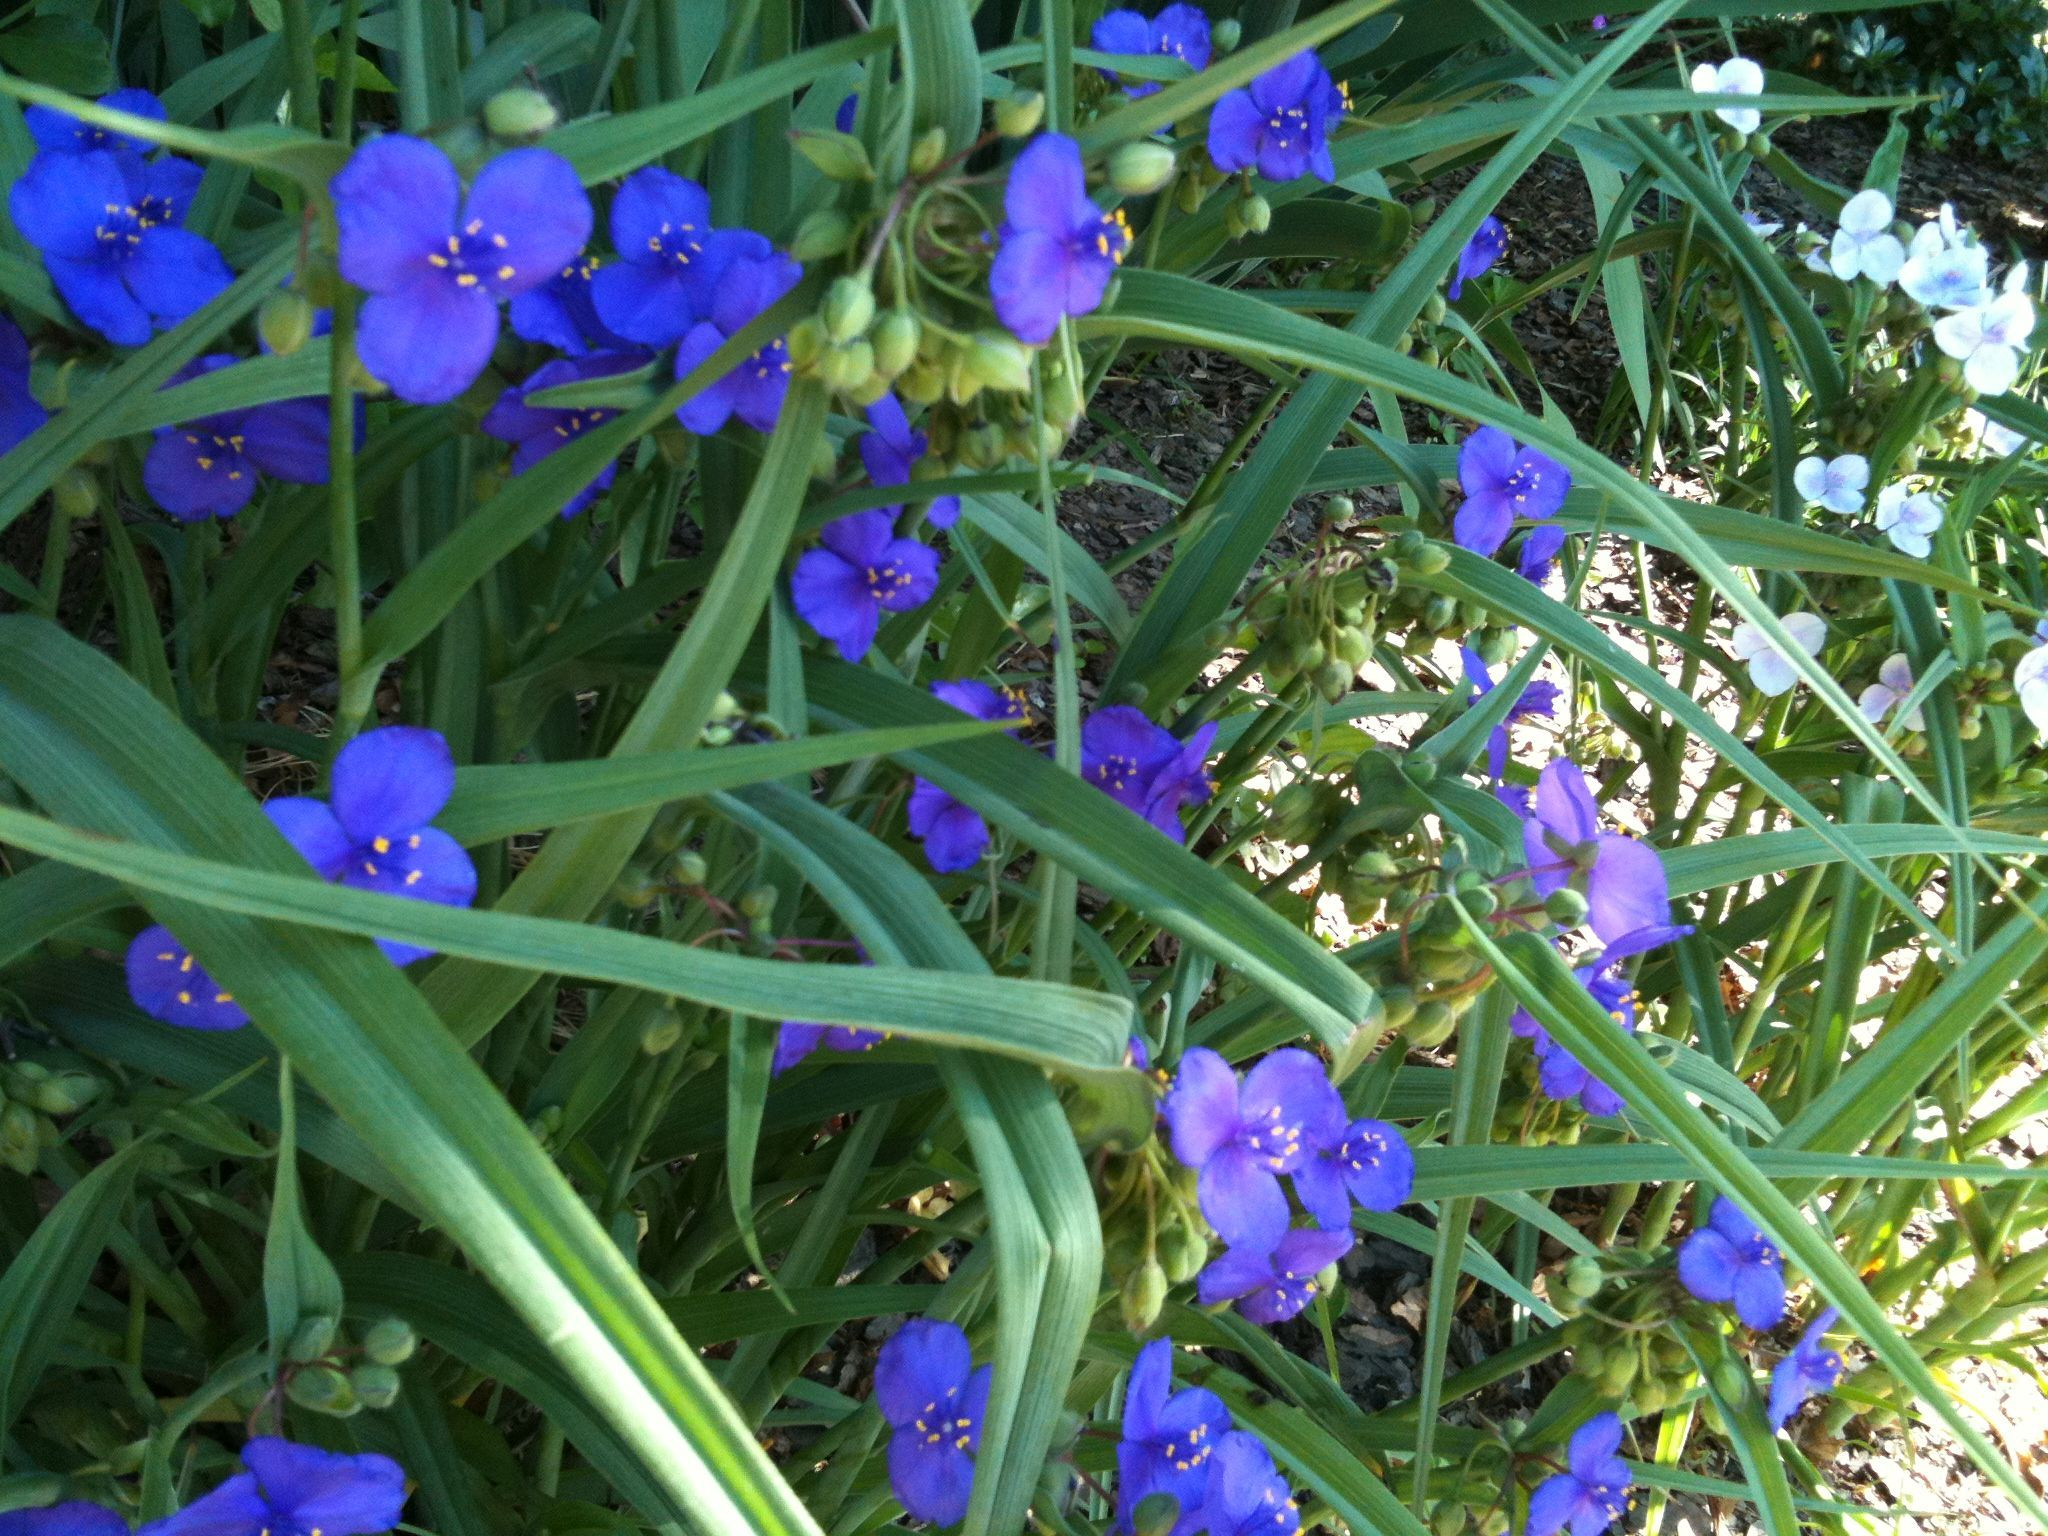 Florida SPIDERWORT. The young leaves and stems, which taste like green beans, can be used in salads, added to soups, or boiled and served as a vegetable. Cherokees and Creek's parboiled or fried T. virginiana (a close relative of T. Ohiensis) and mixed it with other greens. The Timucua of Florida did the same with Ohiensis. The purple flowers make quite a conversation piece when sprinkled atop a green salad or a fruit salad for a dinner party or candied for spectacular desserts toppings. SPIDERWORT.  The young leaves and stems, which taste like green beans, can be used in salads, added to soups, or boiled and served as a vegetable. Cherokees and Creek's parboiled or fried T. virginiana (a close relative of T. Ohiensis) and mixed it with other greens. The Timucua of Florida did the same with Ohiensis. The ...